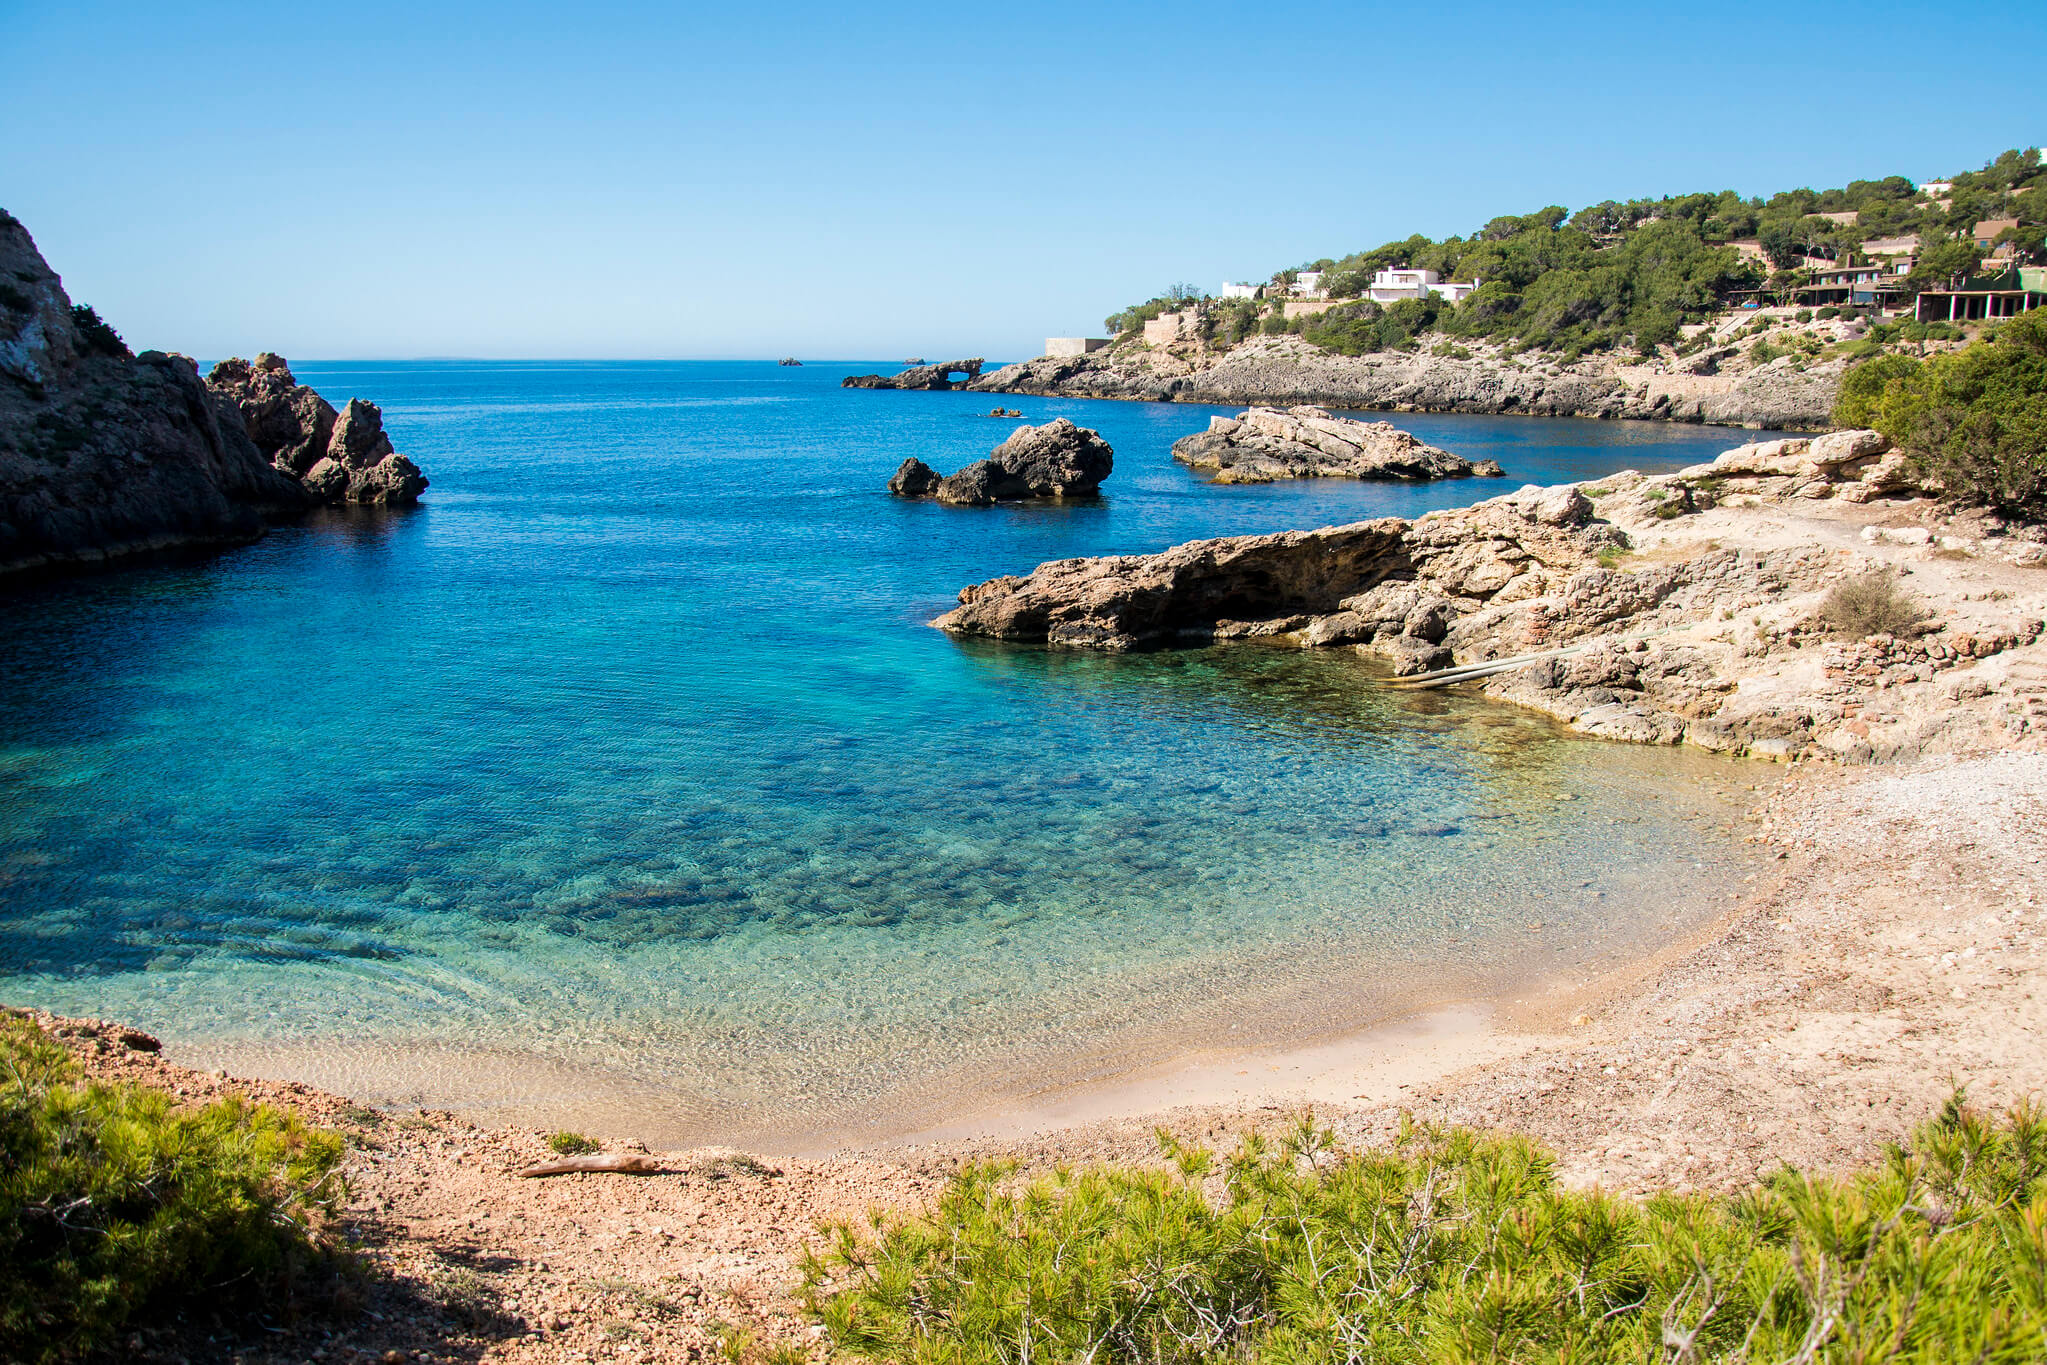 https://www.white-ibiza.com/wp-content/uploads/2020/03/ibiza-beaches-cala-olivera-01.jpg